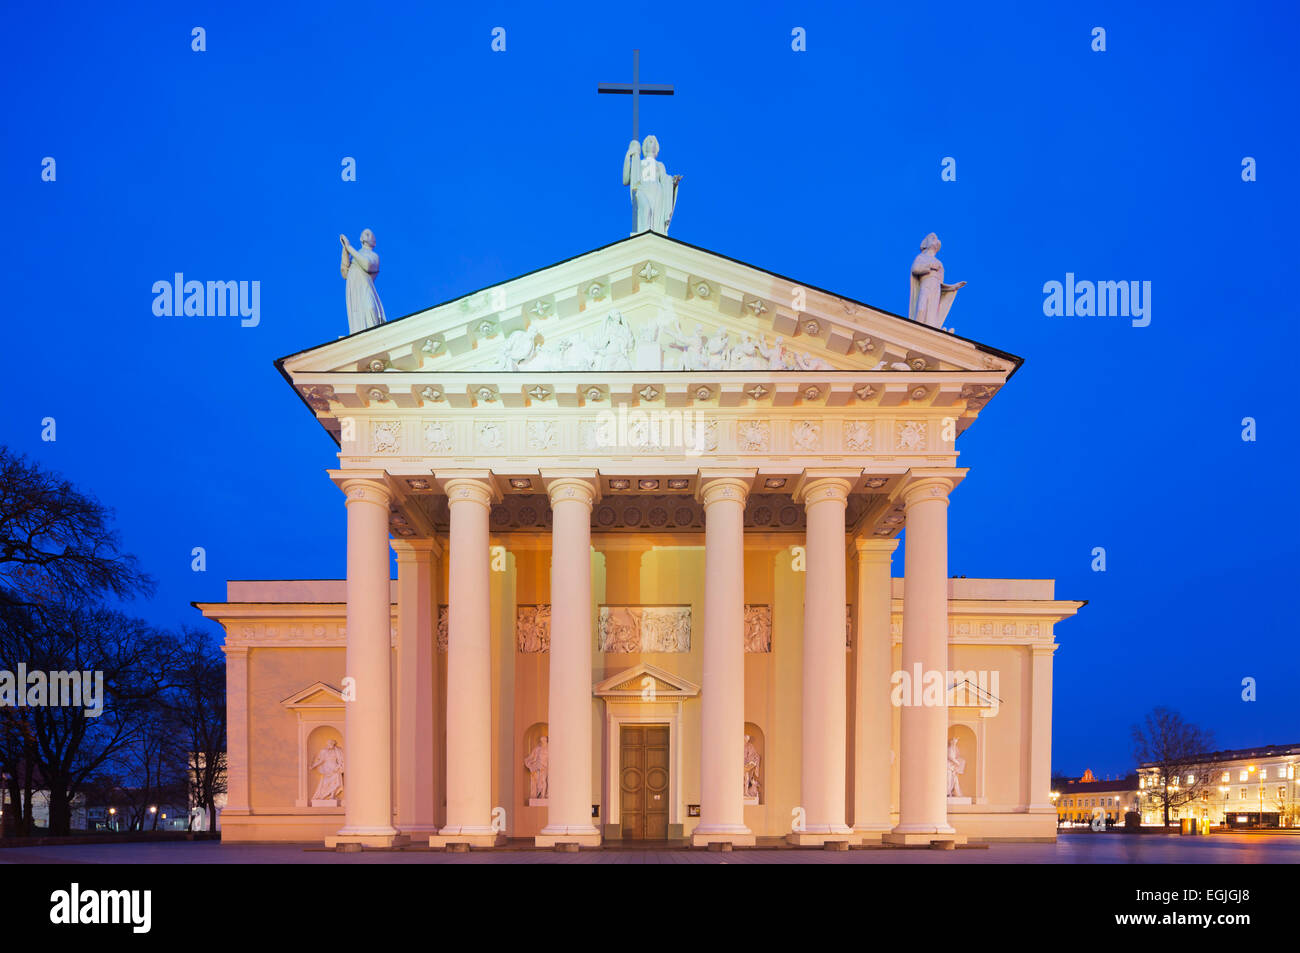 Europe, Baltic states, Lithuania, Vilnius, St. Stanislaus Cathedral in Cathedral Square - Stock Image